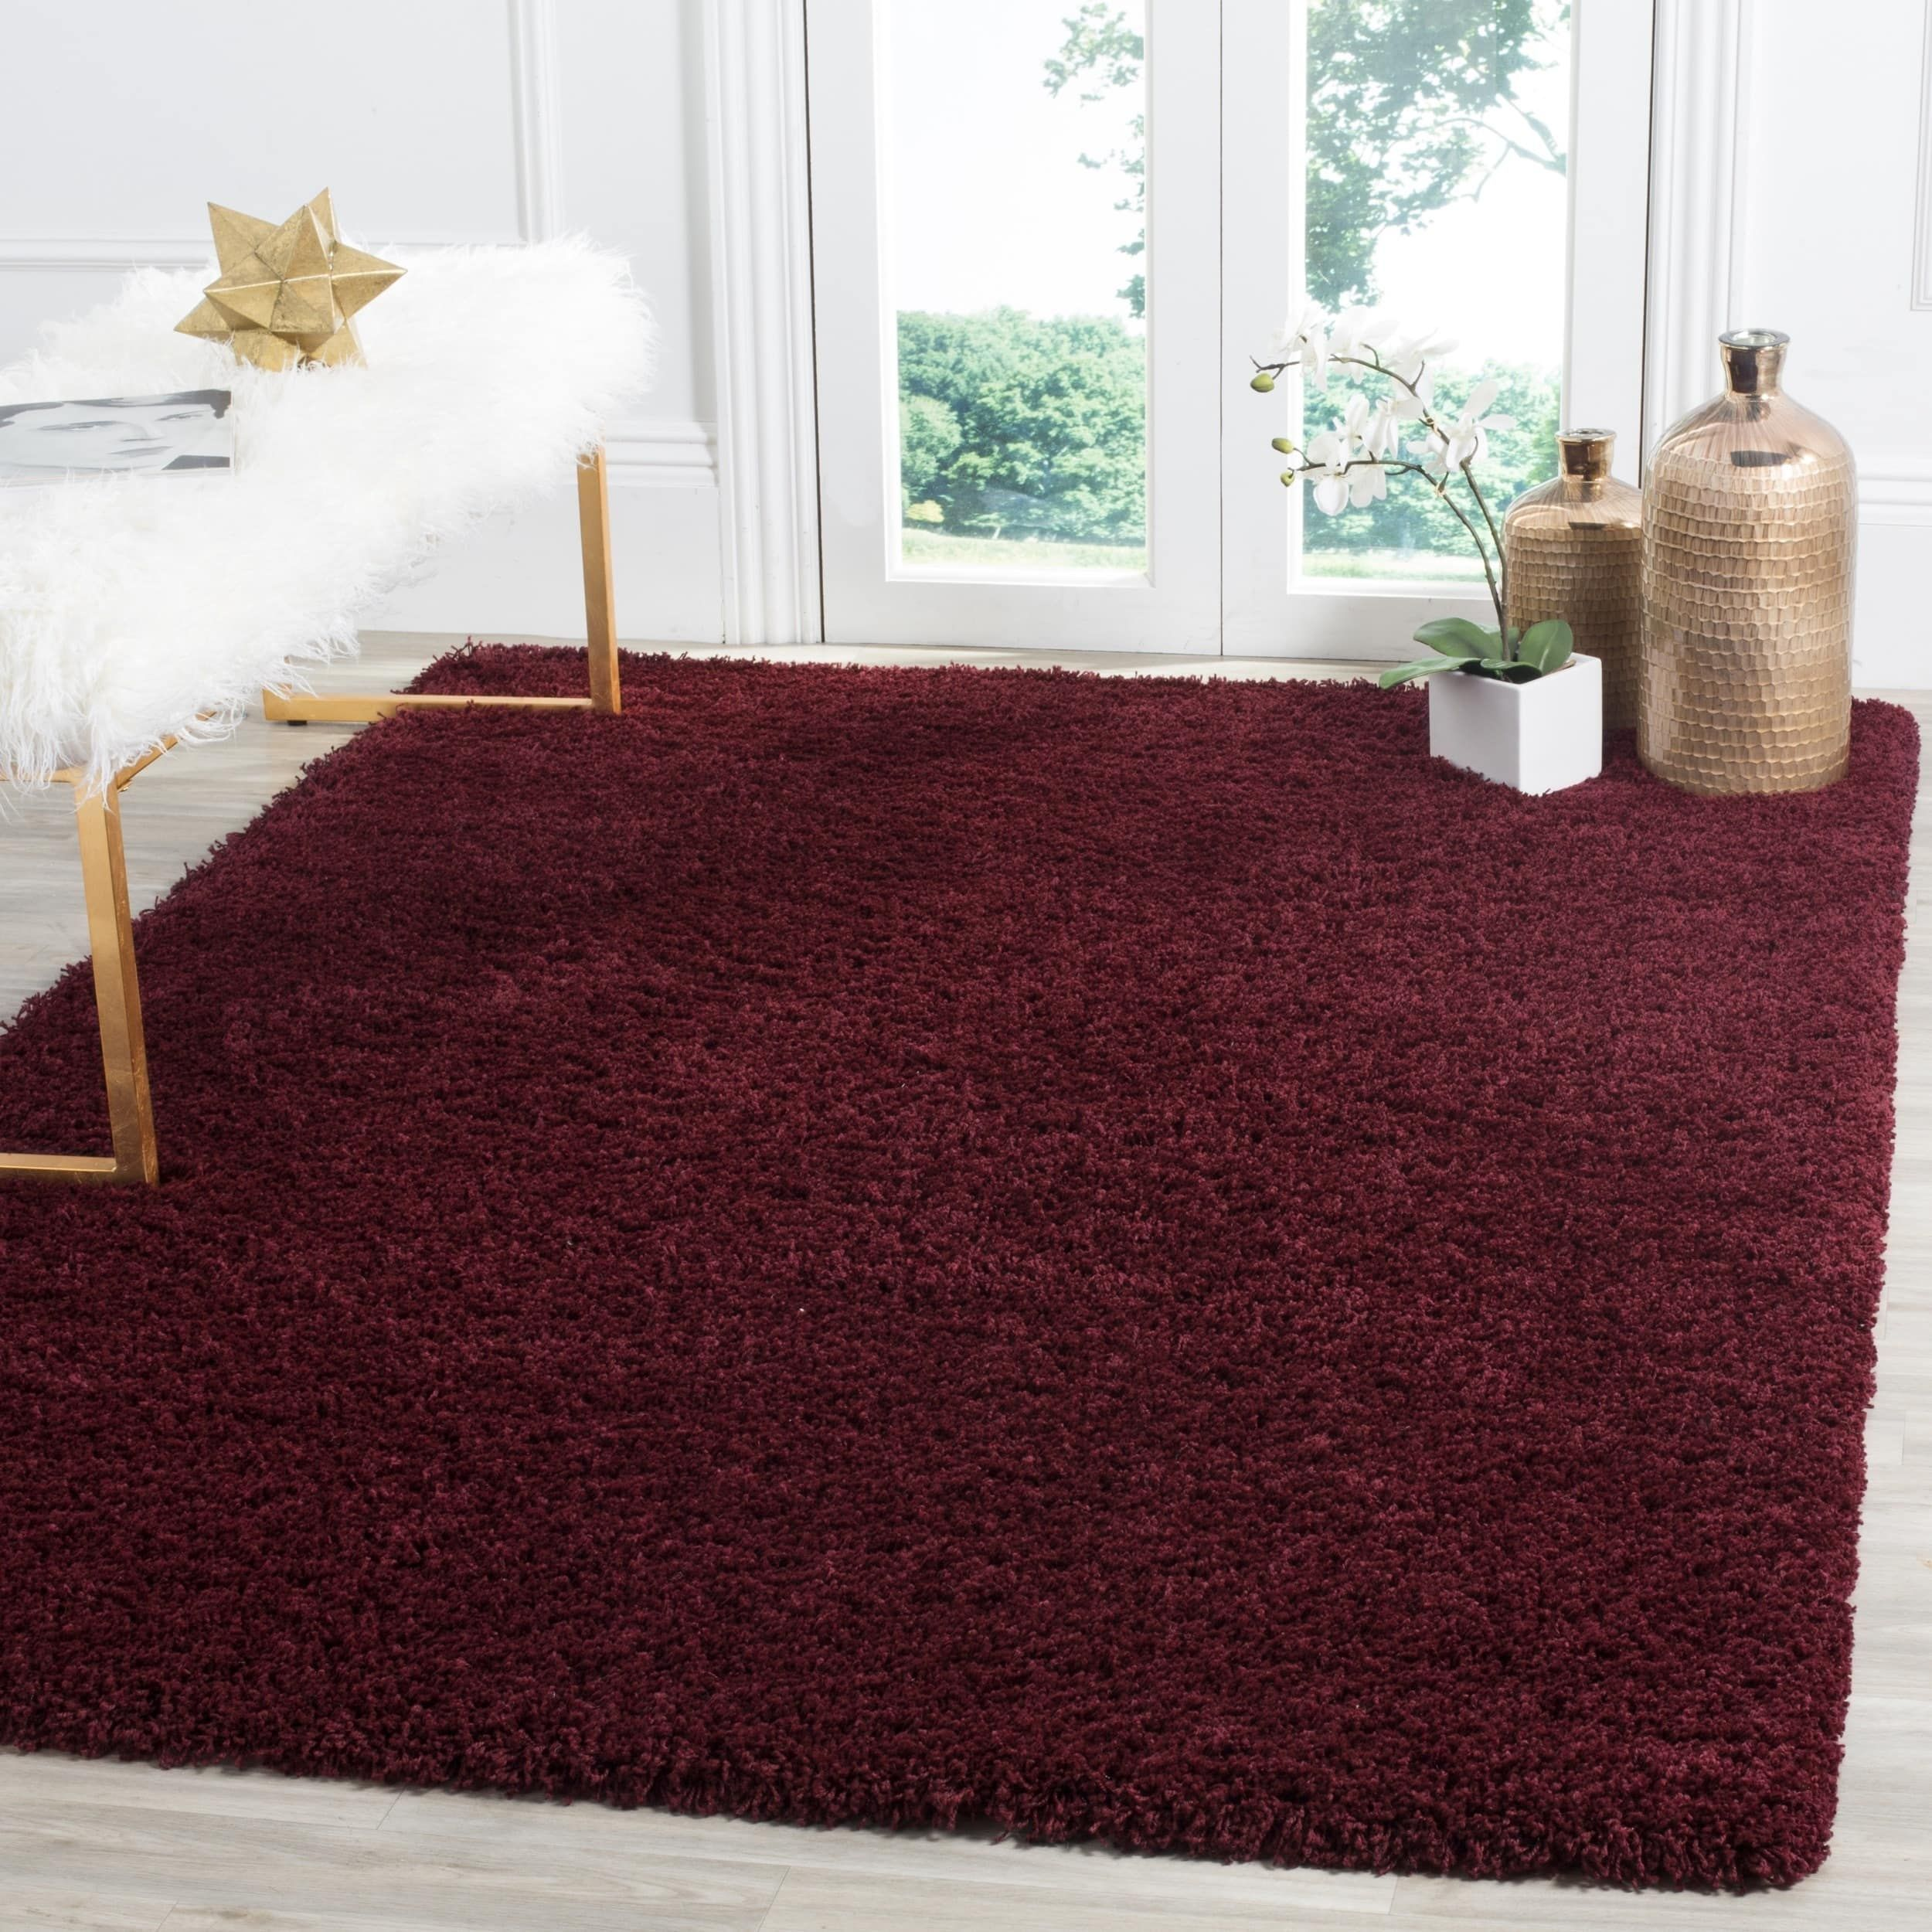 Overstock Com Online Shopping Bedding Furniture Electronics Jewelry Clothing More Burgundy Bedroom Burgundy Living Room Maroon Living Room